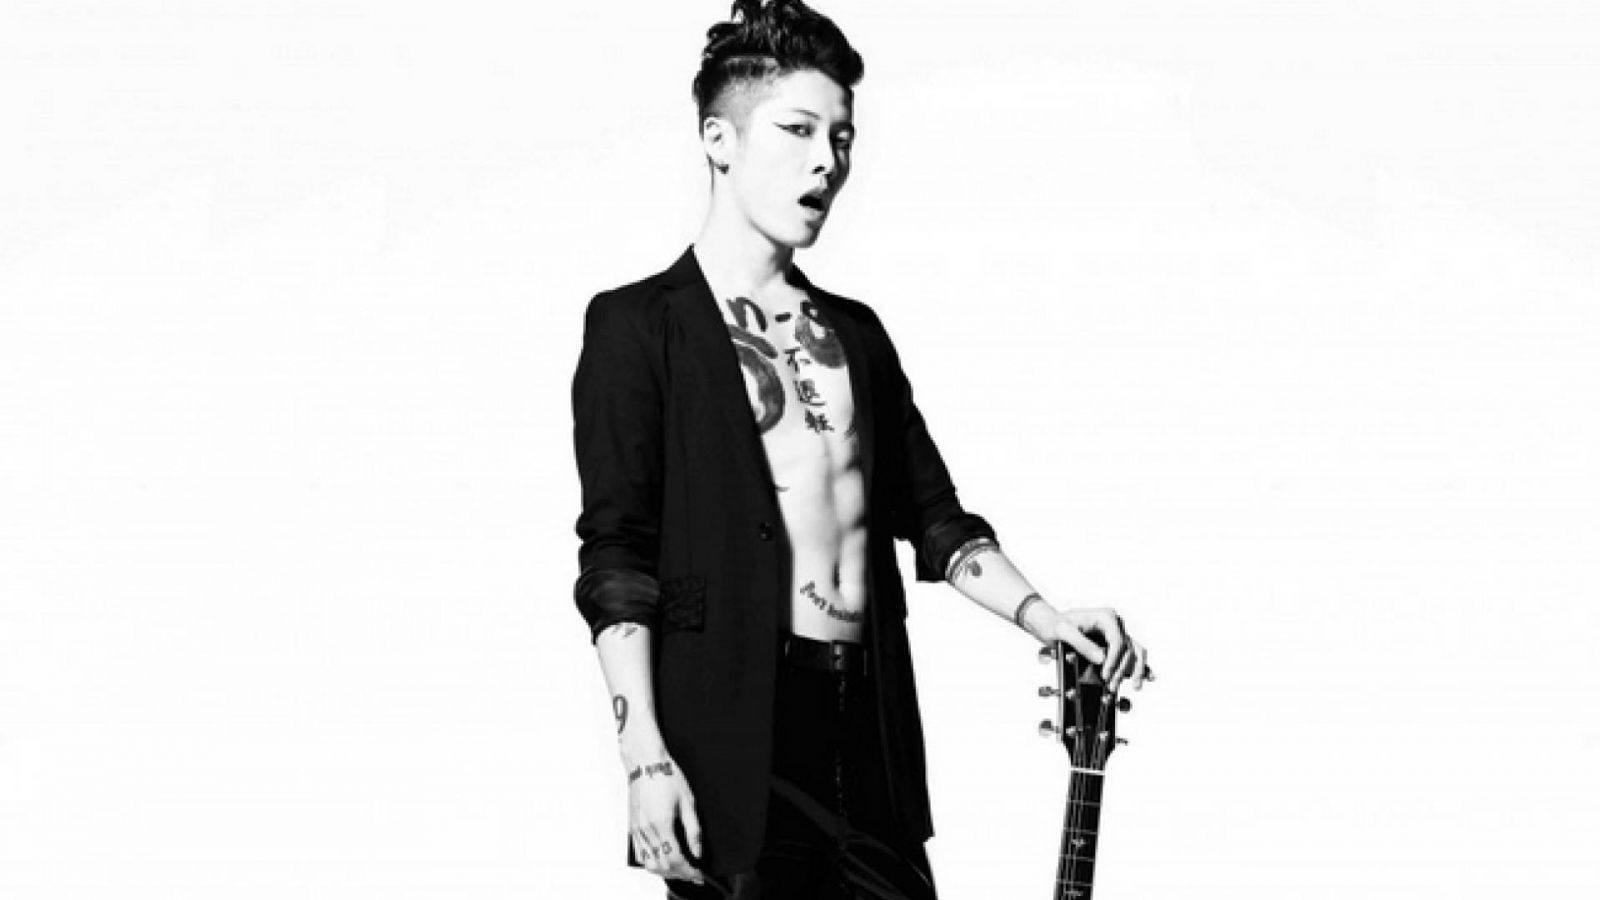 Details on MIYAVI's New Single © 2014 UNIVERSAL MUSIC LLC All rights reserved.